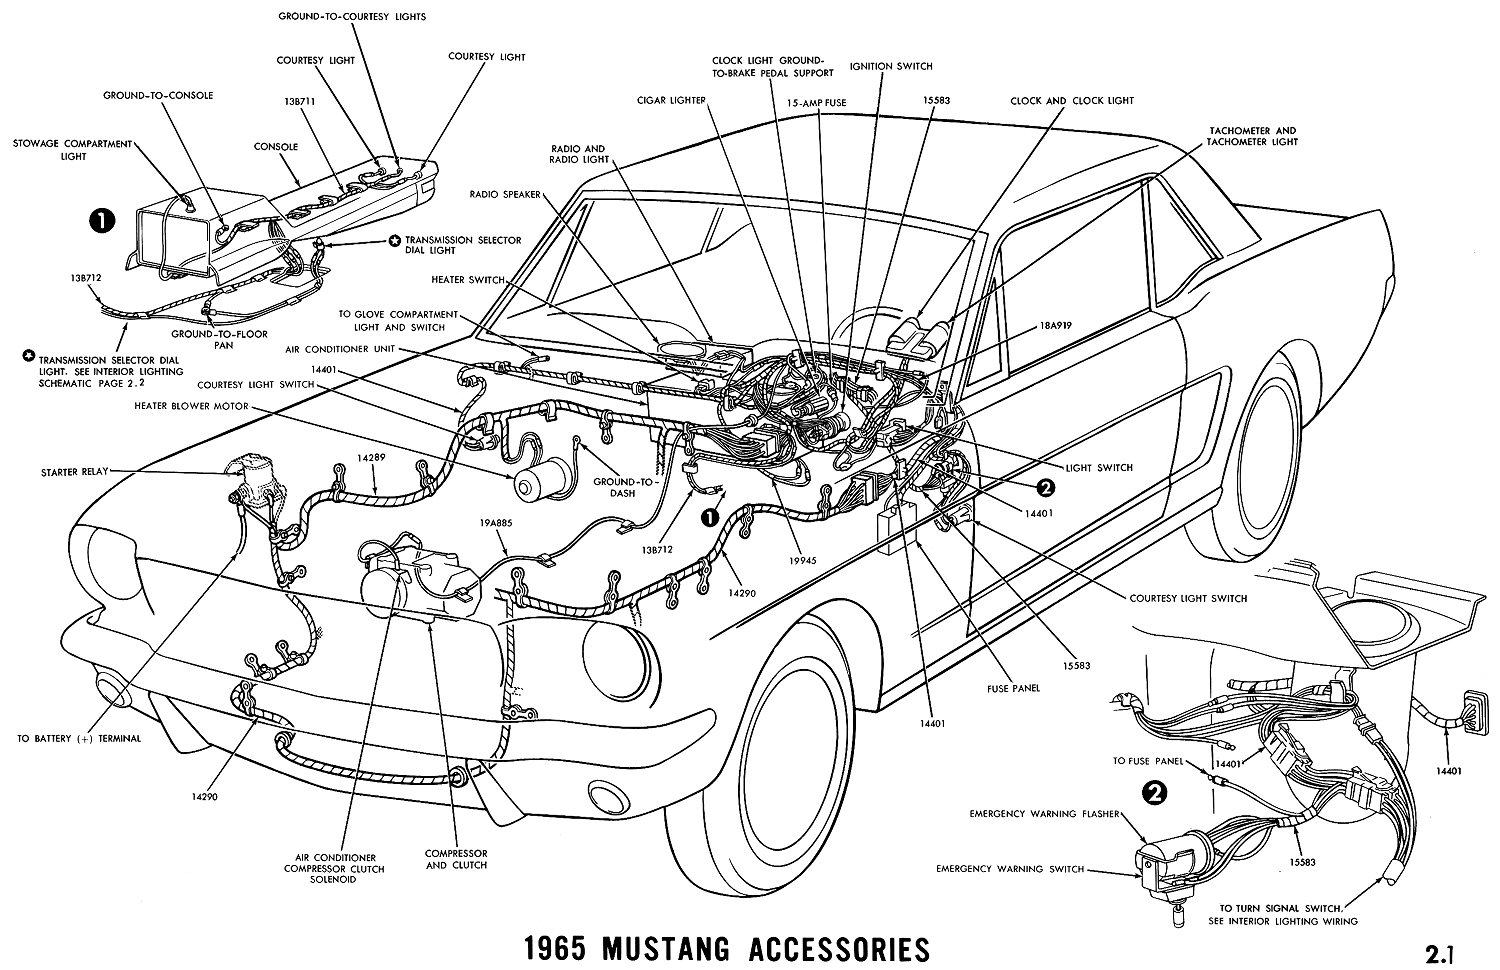 1965h 1965 mustang wiring diagrams average joe restoration 2008 mustang fuse box location at crackthecode.co